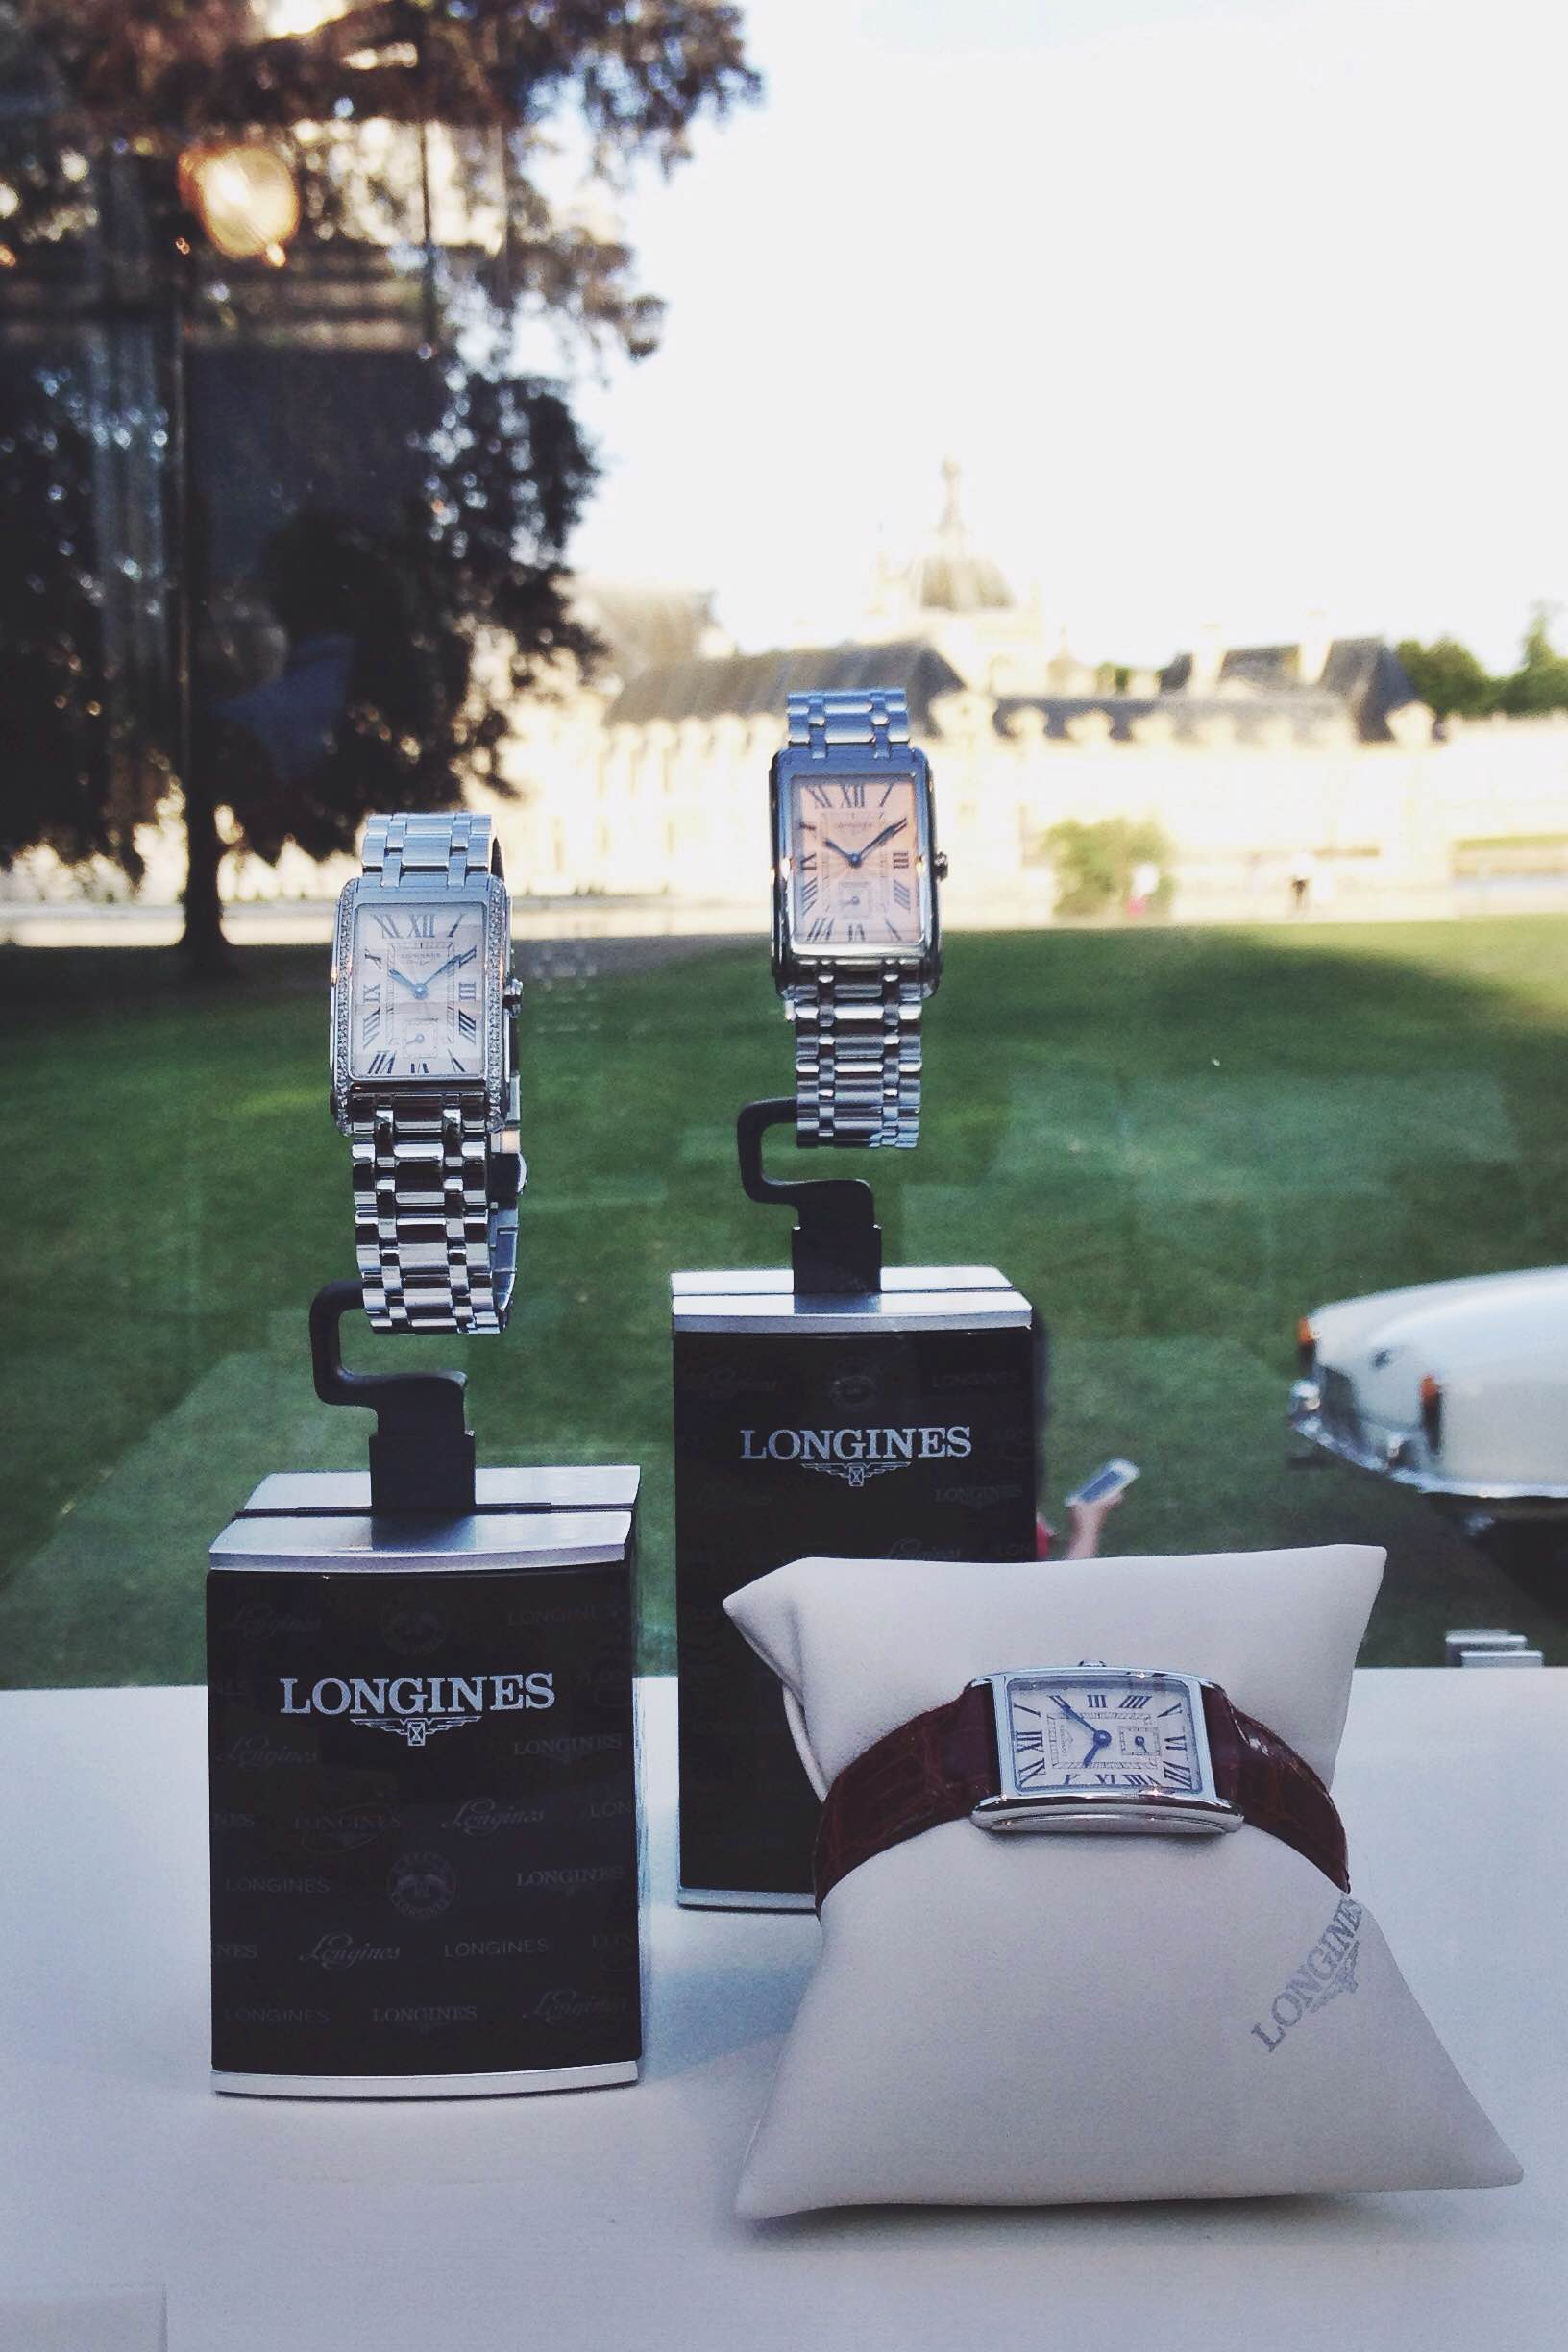 event-longines-dolce-vita-garden-party-and-aishwarya-rai-day-two-in-chantilly-9283